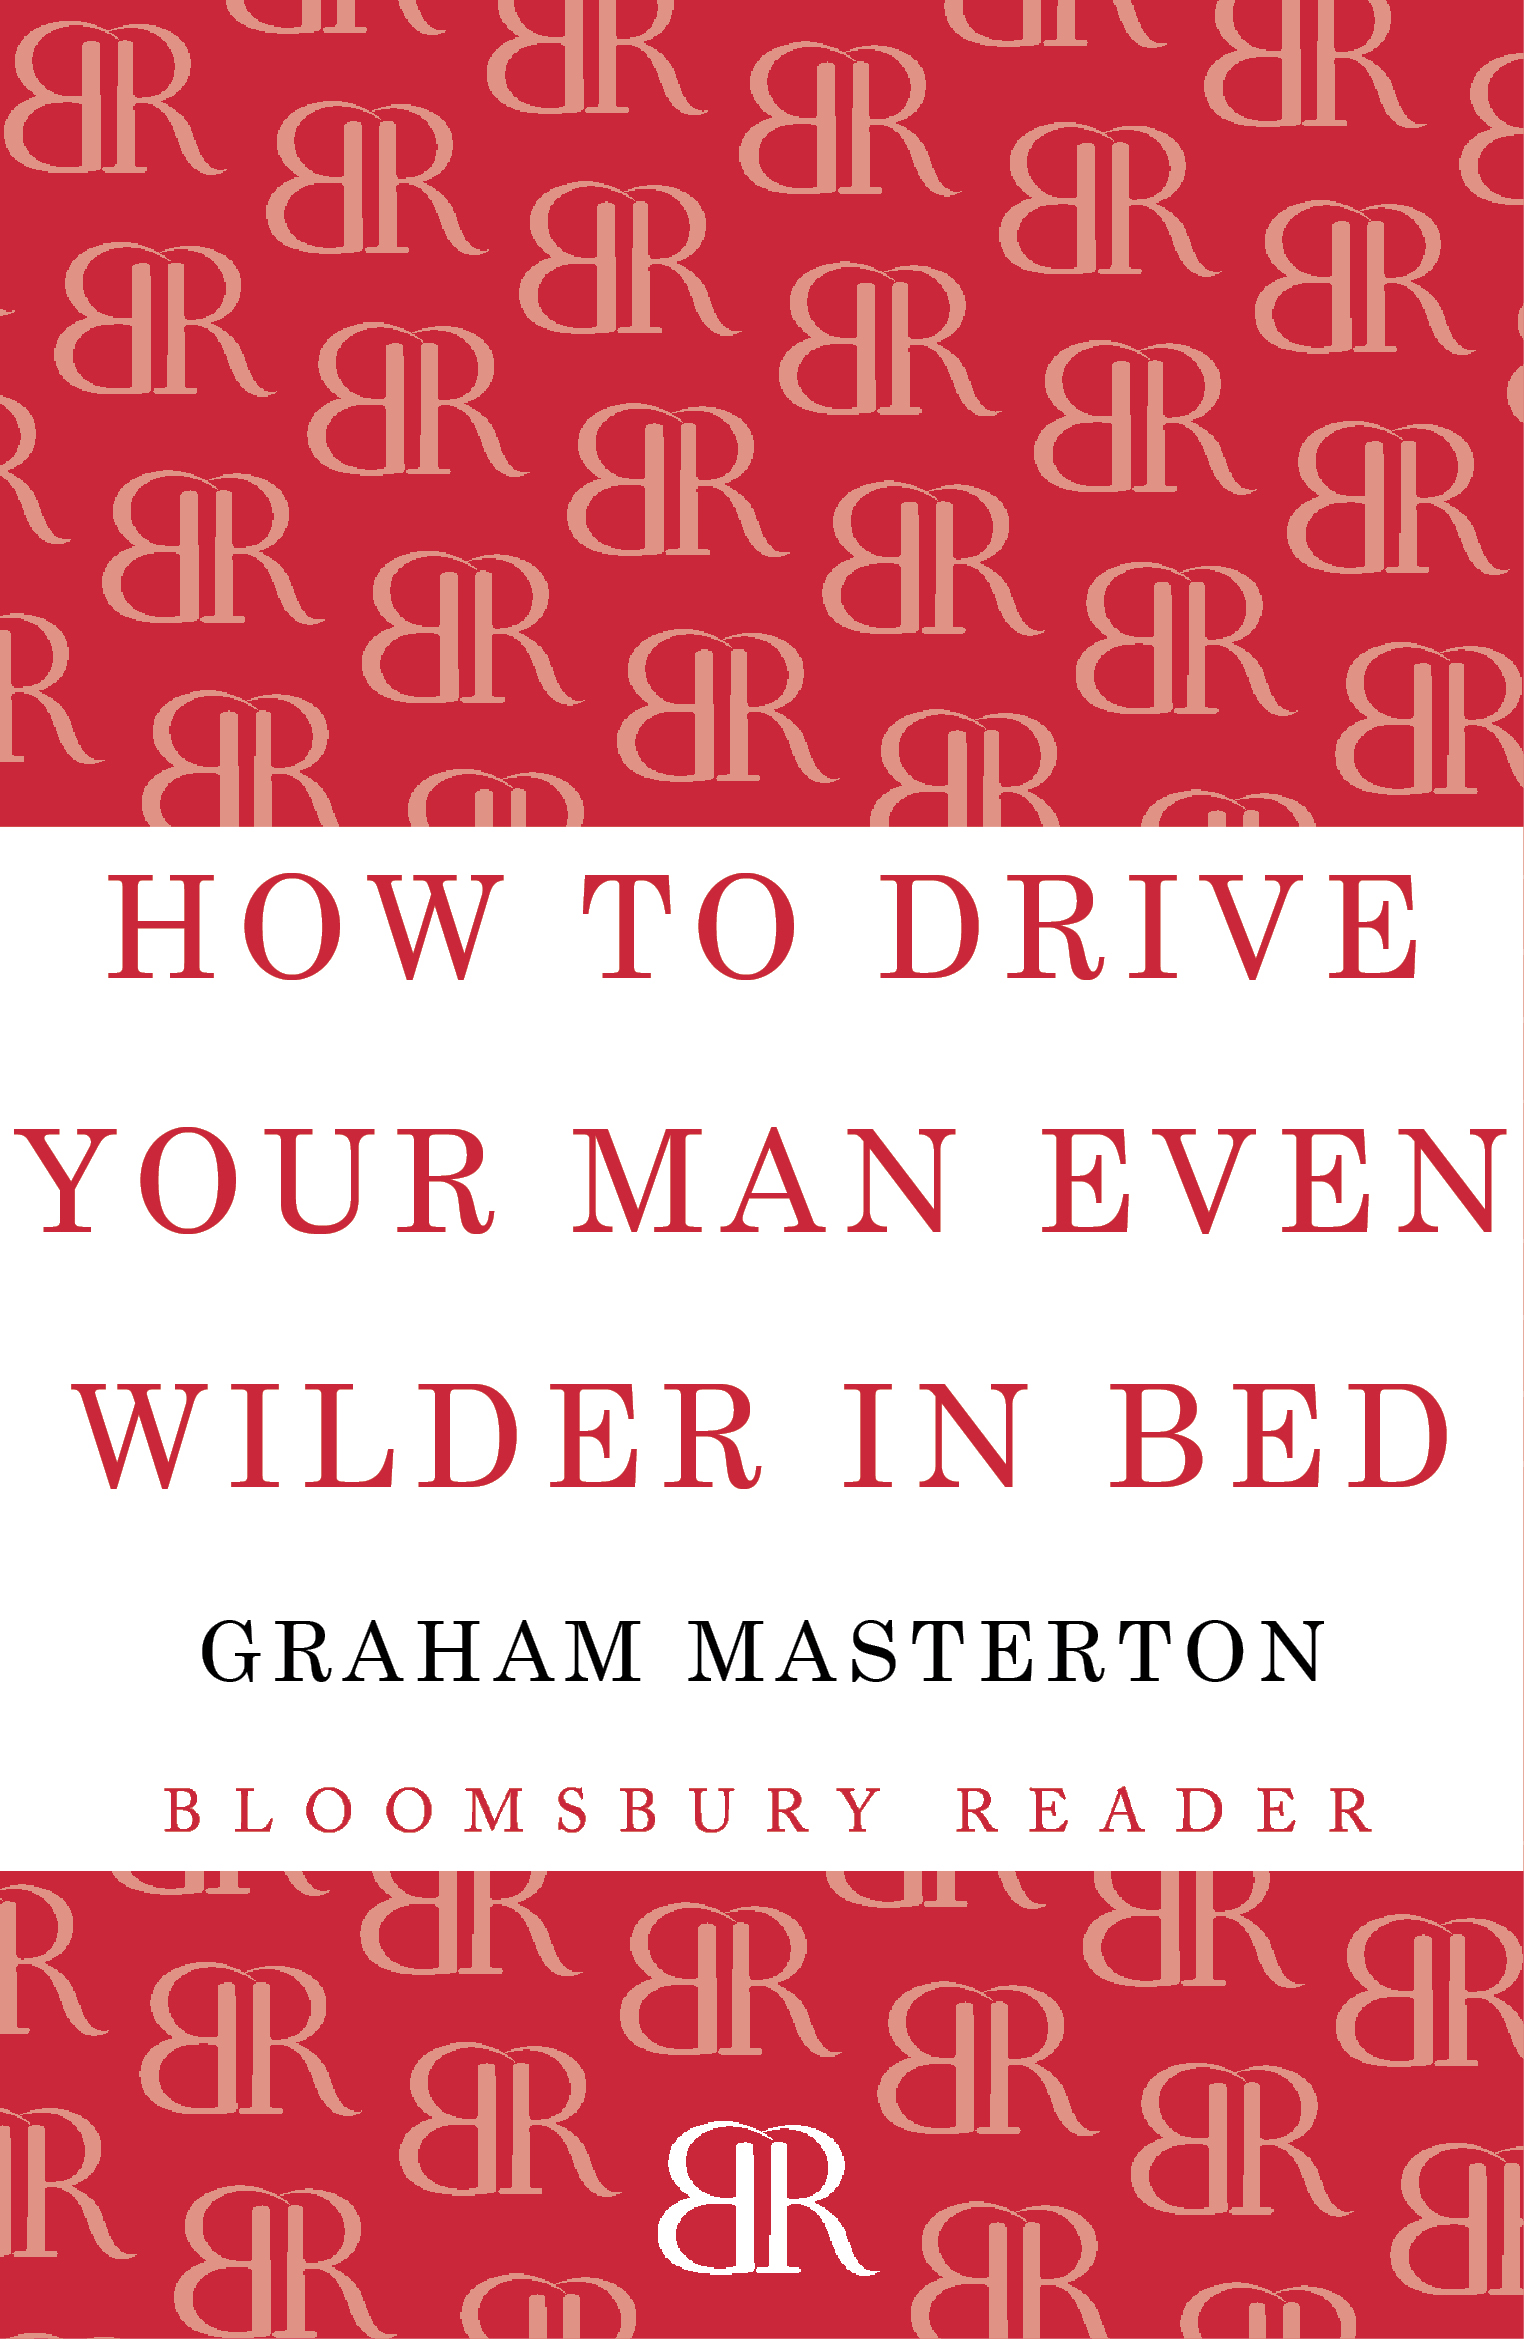 How to Drive Your Man Even Wilder in Bed By: Graham Masterton